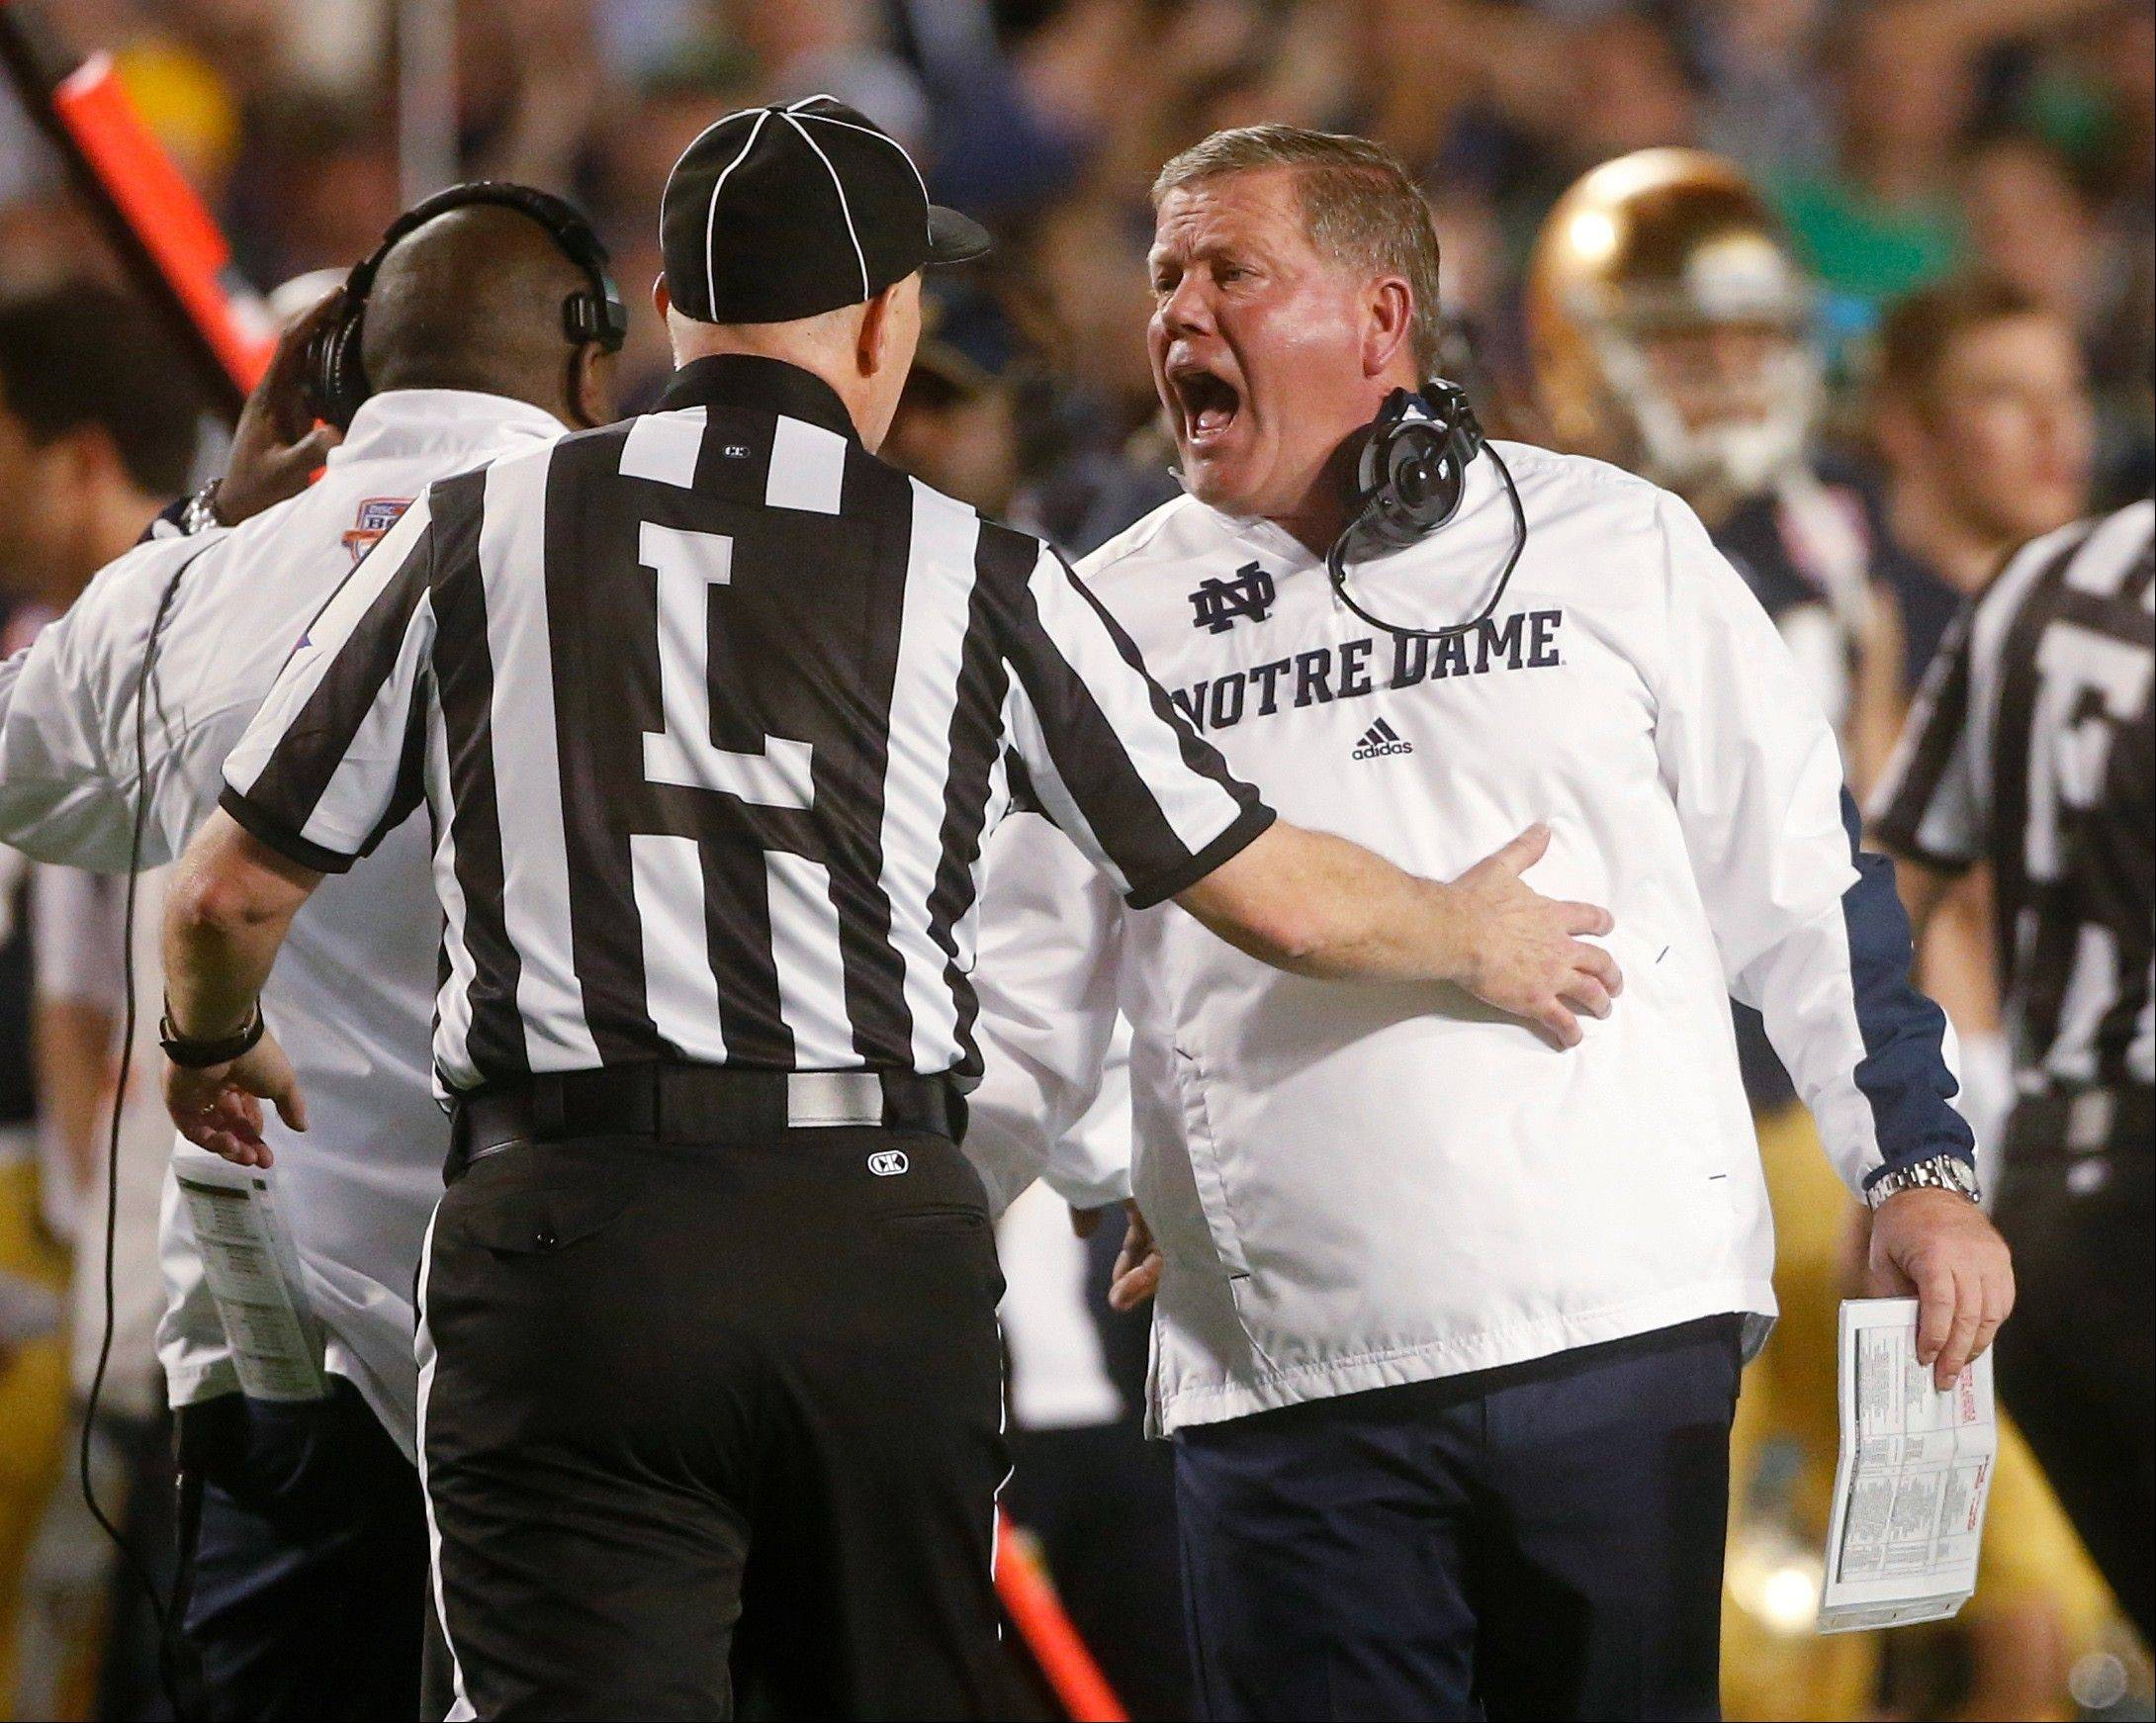 Notre Dame�s Brian Kelly just did what any good coach would do when he interviewed with the Philadelphia Eagles about their opening.